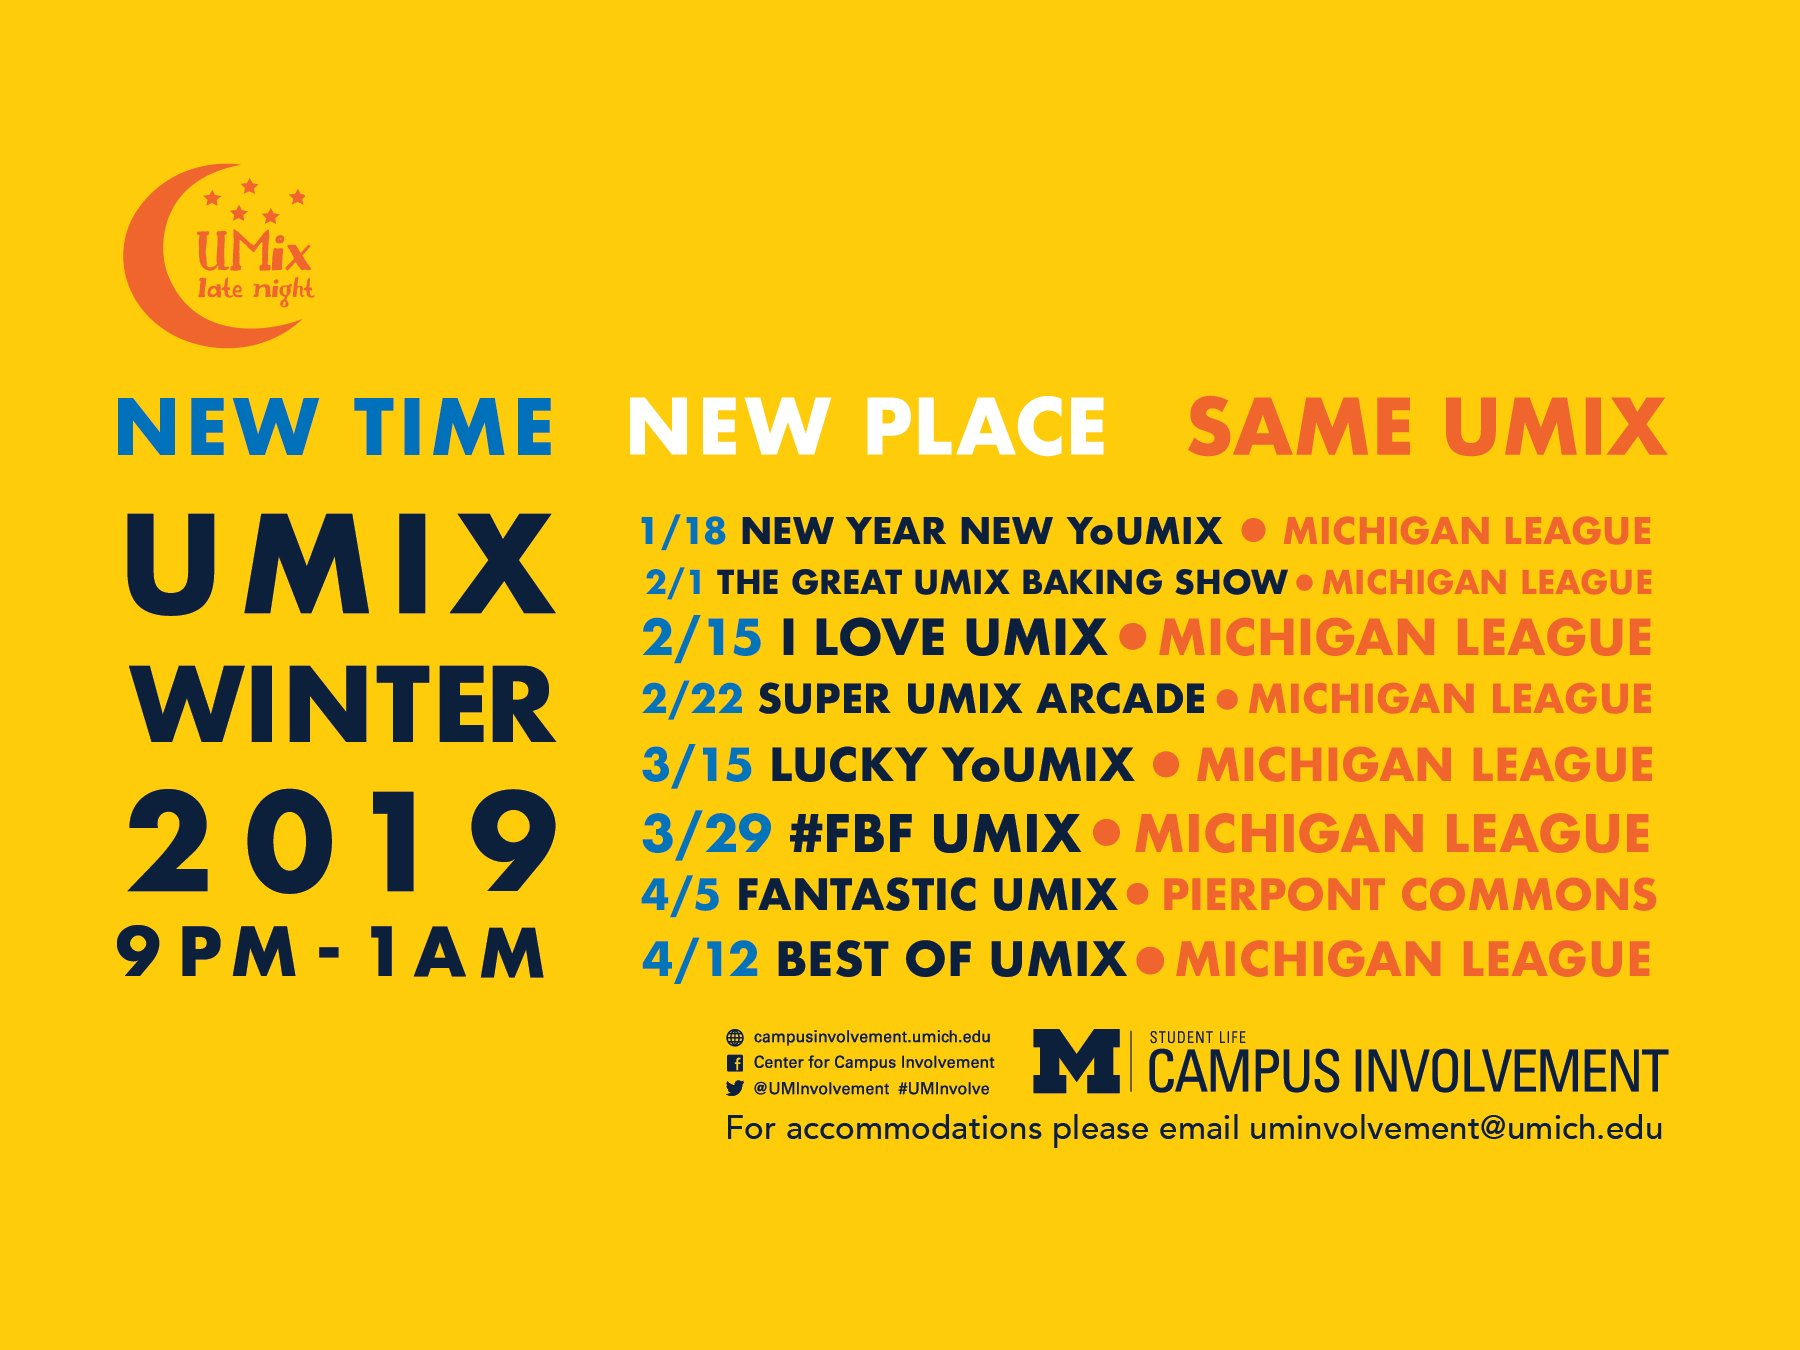 Umix Winter 2019 | Campus Involvement Calendar 2019 Umich